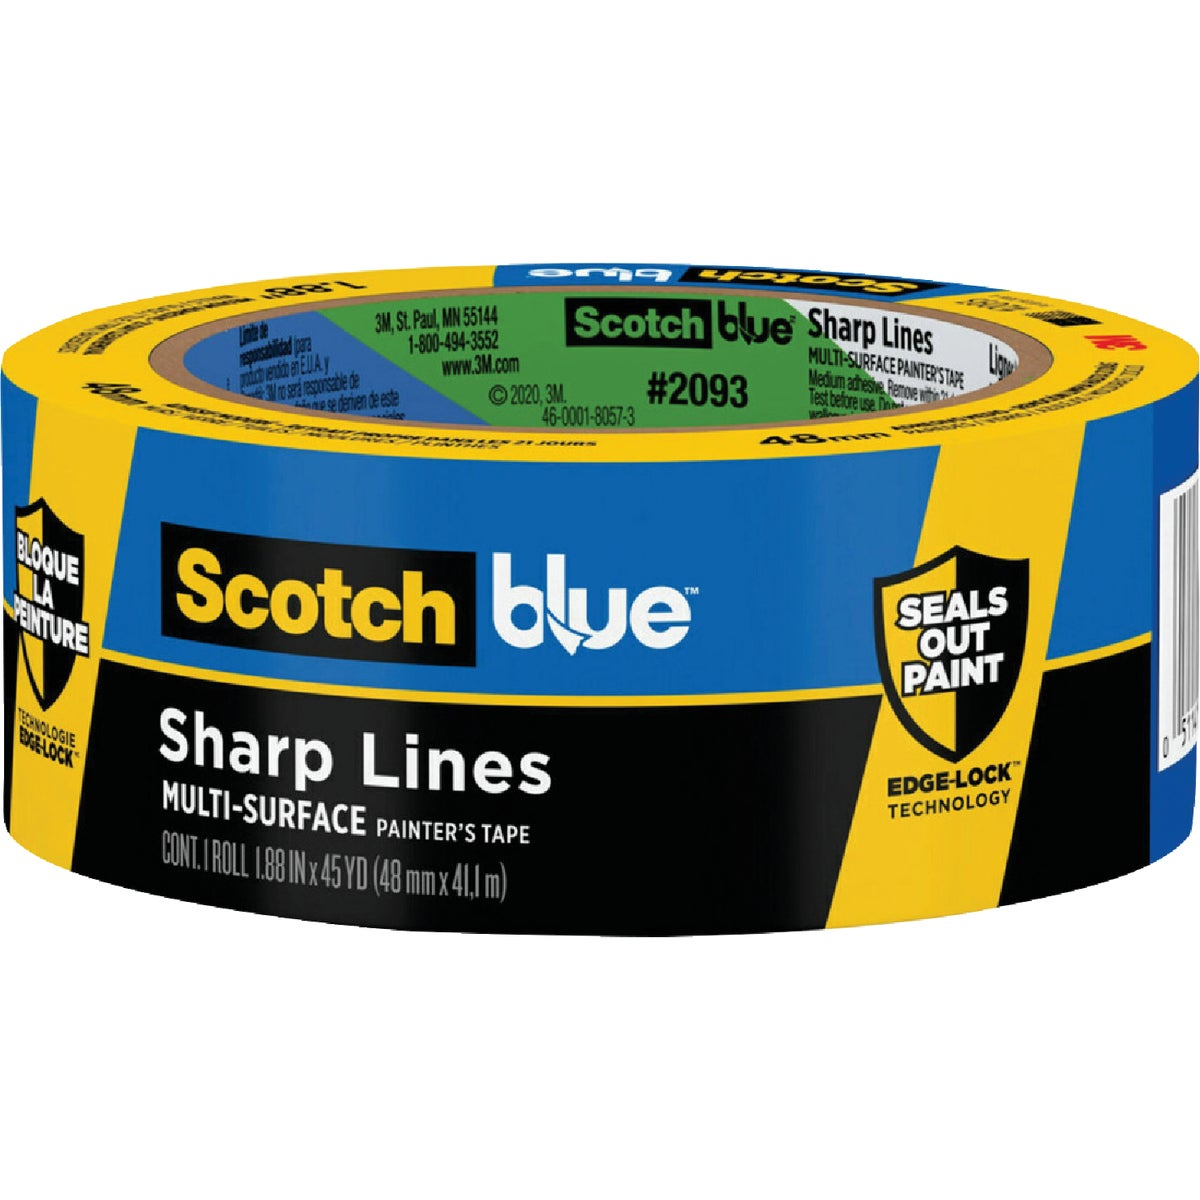 "2"" BLUE EDGELOCK TAPE - 2093EL-2N by 3m Co"